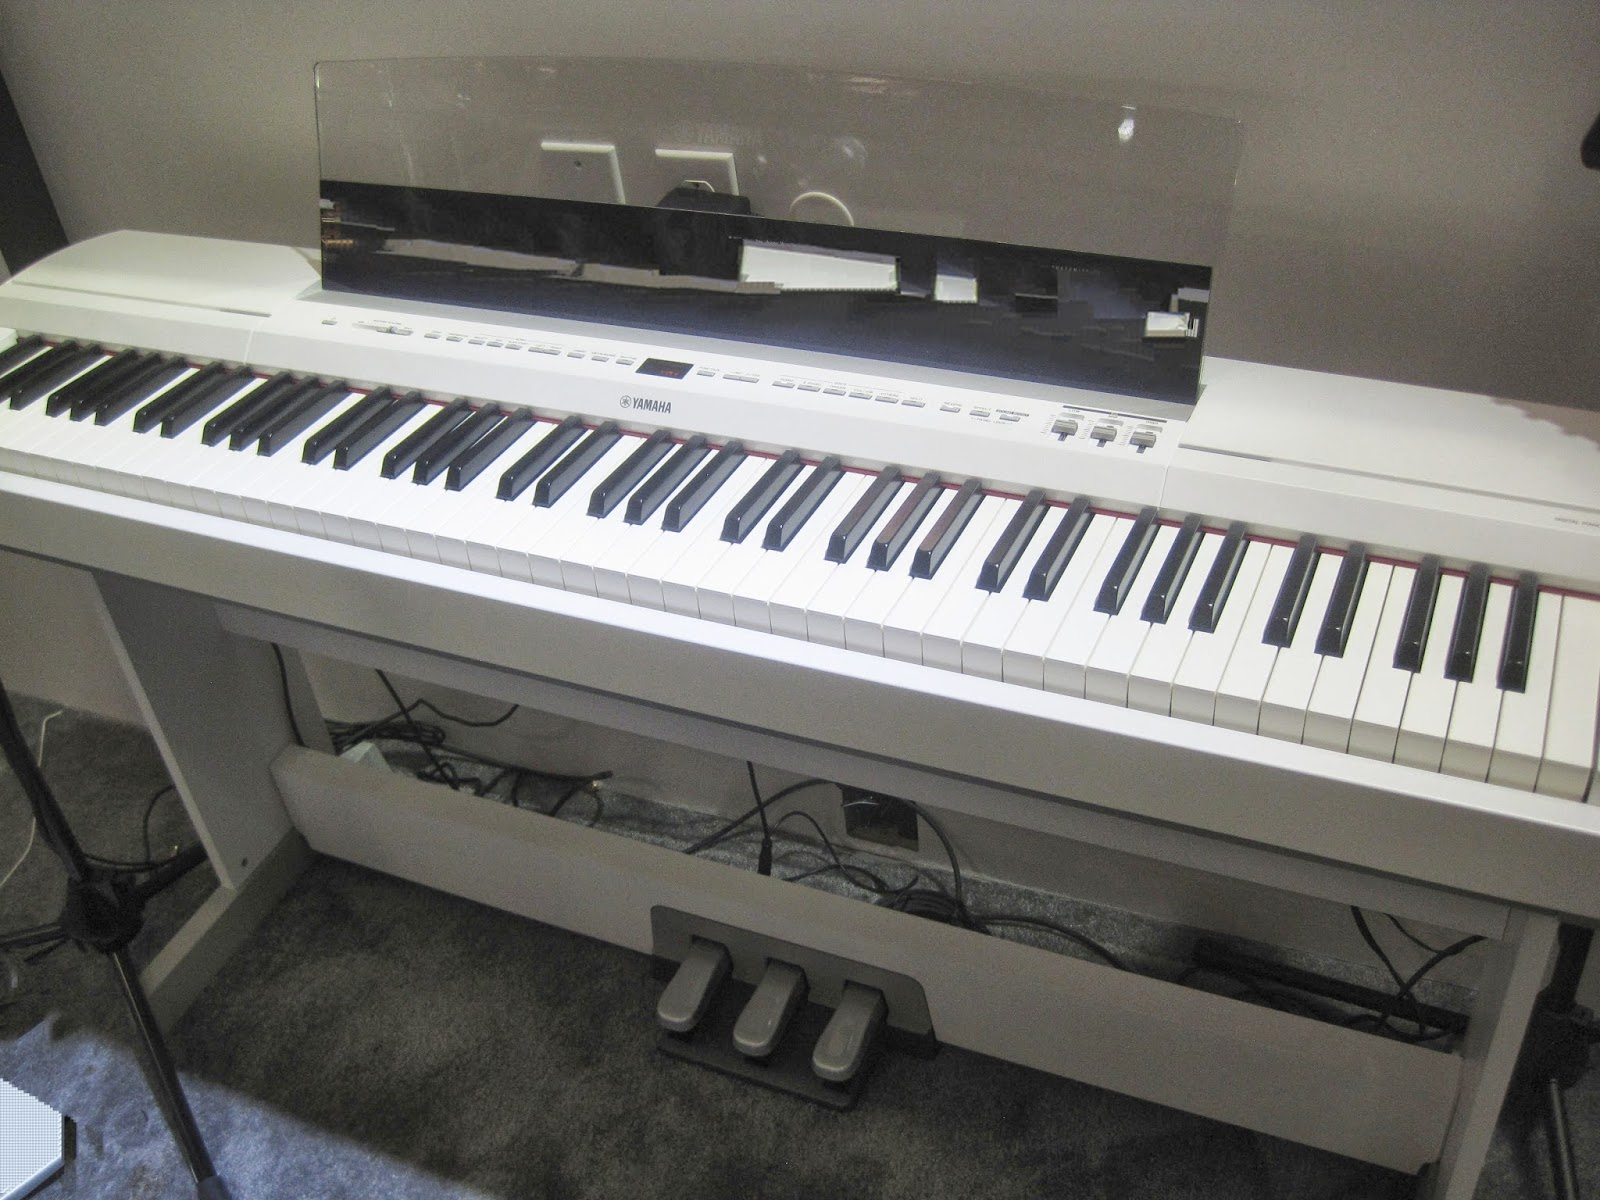 Az piano reviews review yamaha p255 digital piano for Yamaha piano com